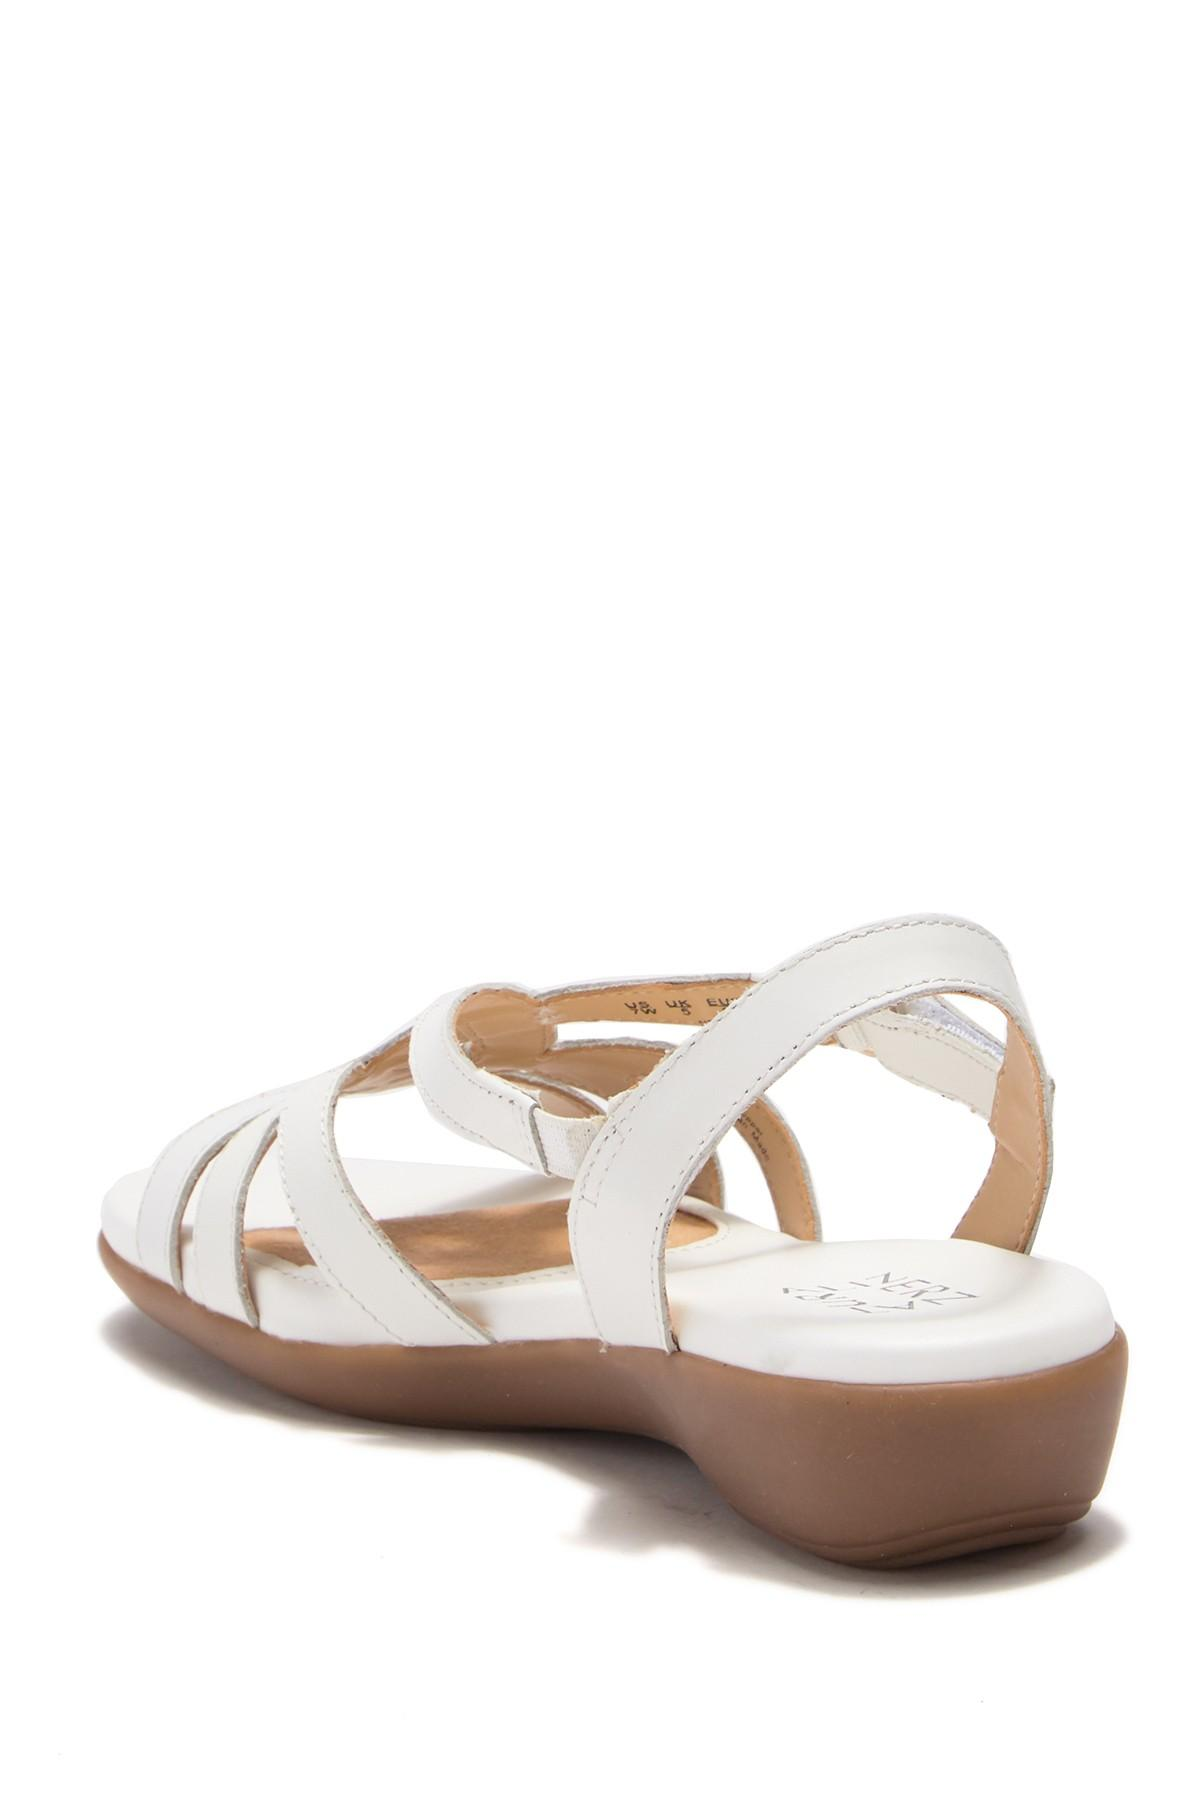 f212f8e4d5e Naturalizer - White Neo Leather Wedge Sandal - Wide Width Available - Lyst.  View fullscreen